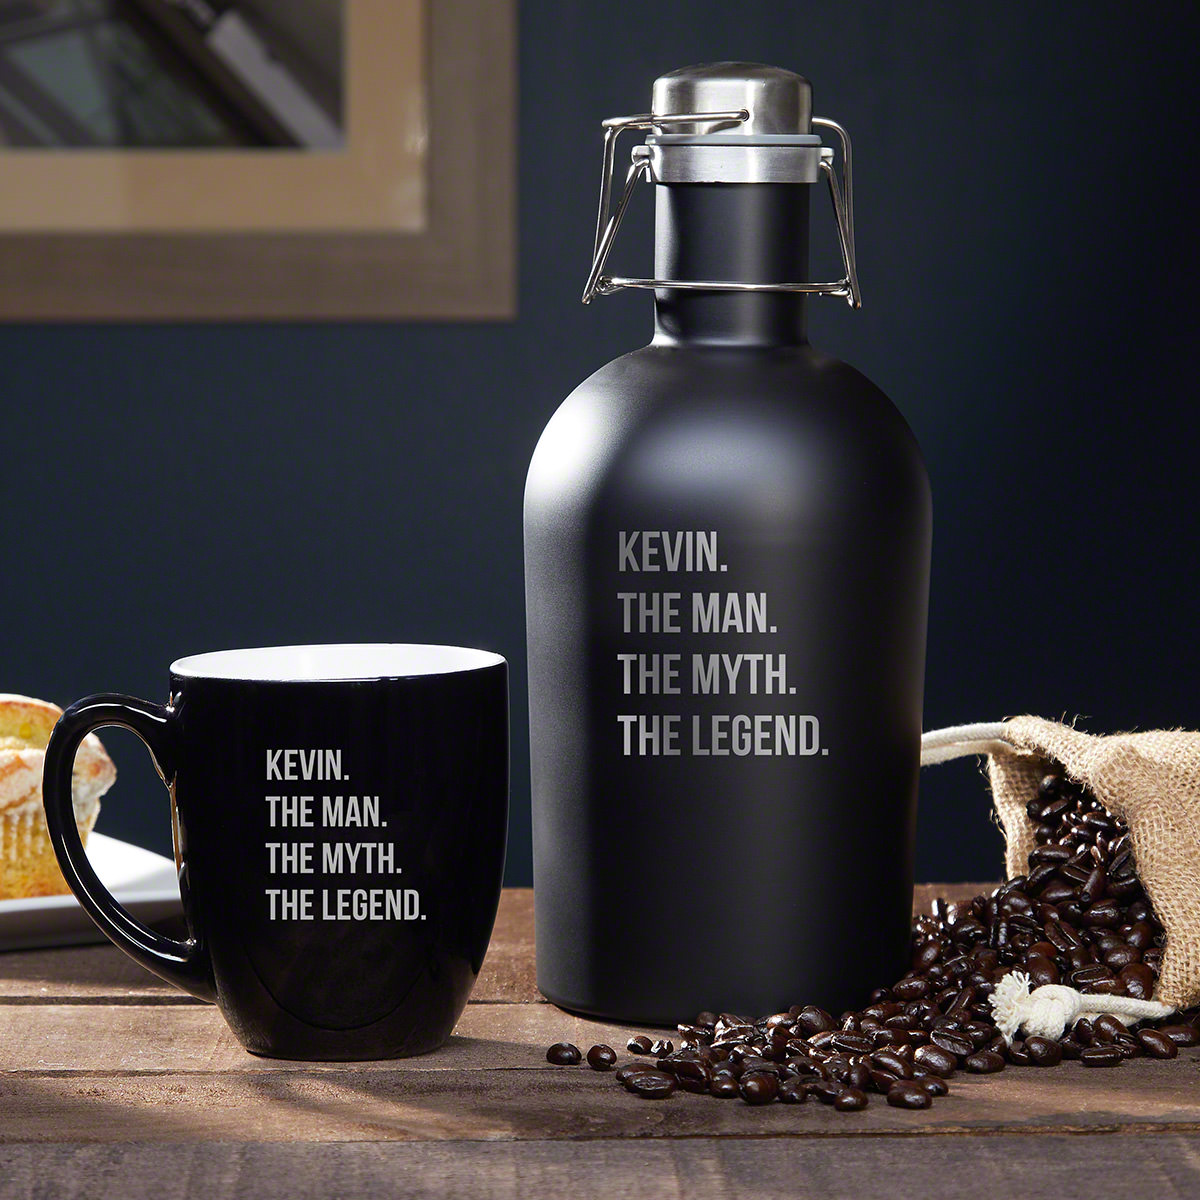 Legends know the importance of coffee. Ask them. They'll tell you their legend was forged with a custom stainless steel coffee carafe and matching coffee mug. If they weren't able to tote around their special brew with them and keep it warm wherever t #mug